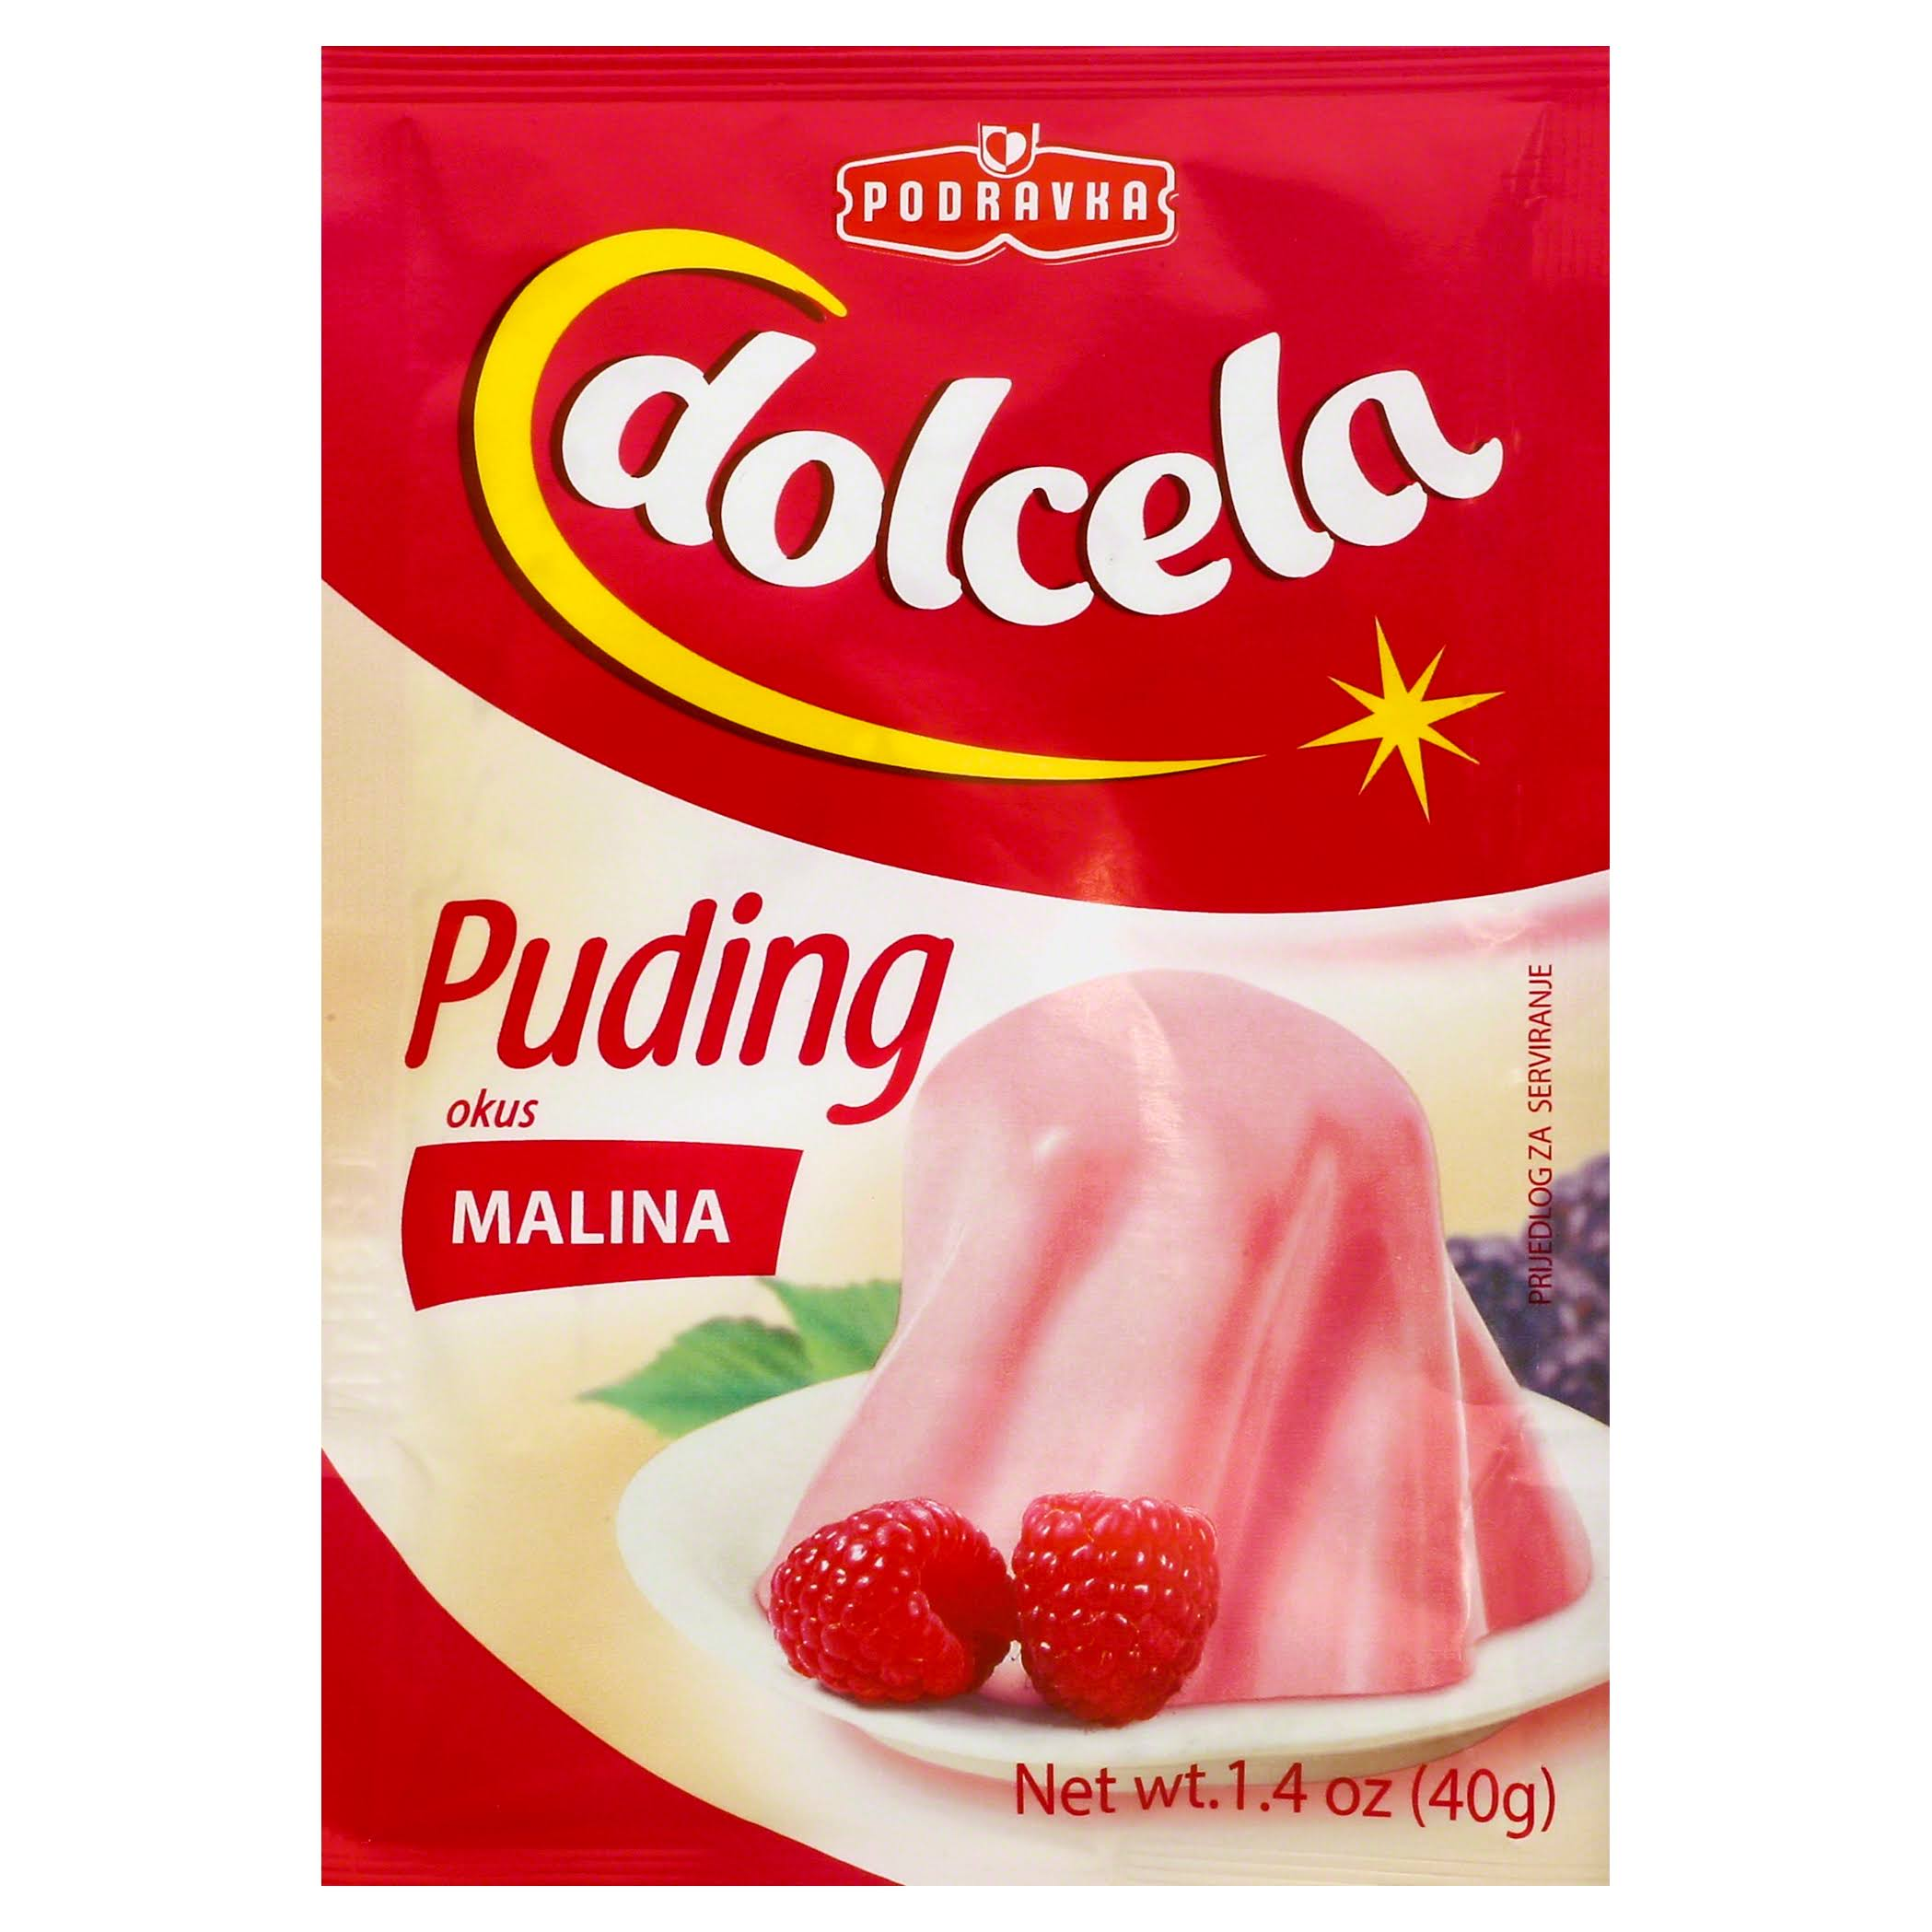 Podravka Pudding - Raspberry, 40g